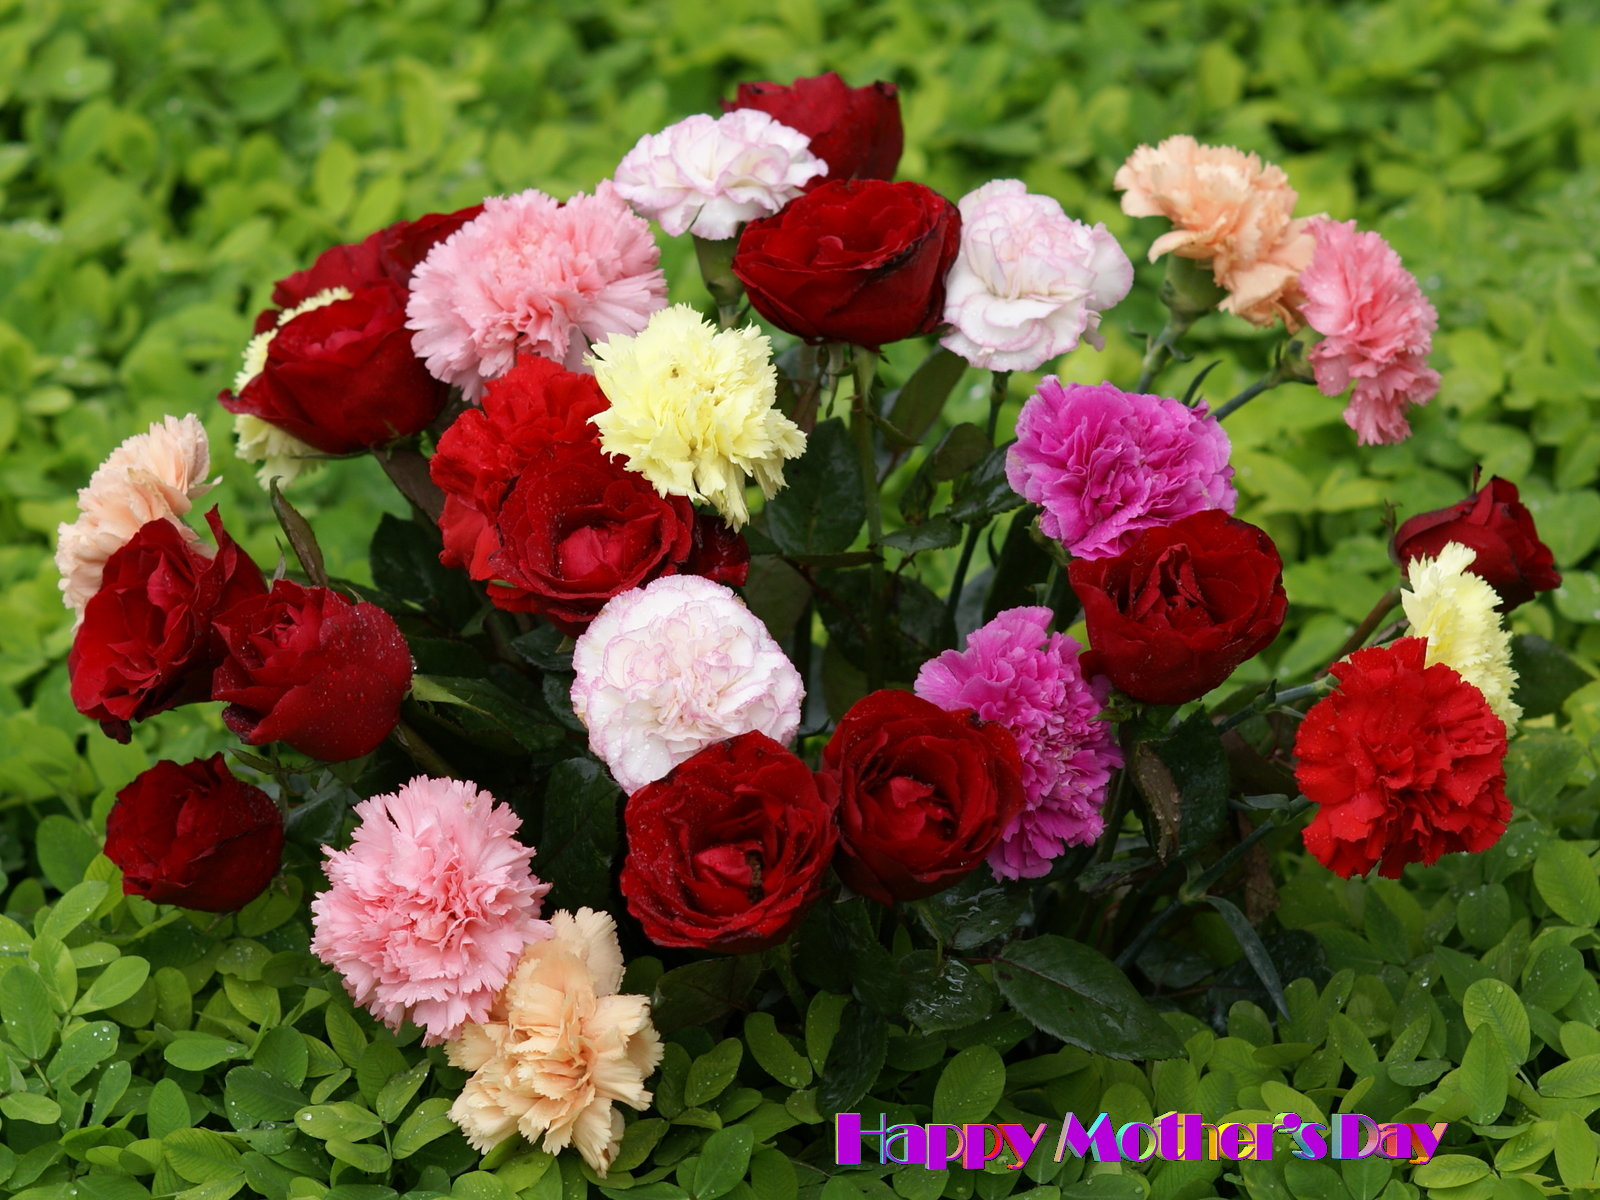 Mothers day wallpaper beautiful flowers Beautiful flowers images